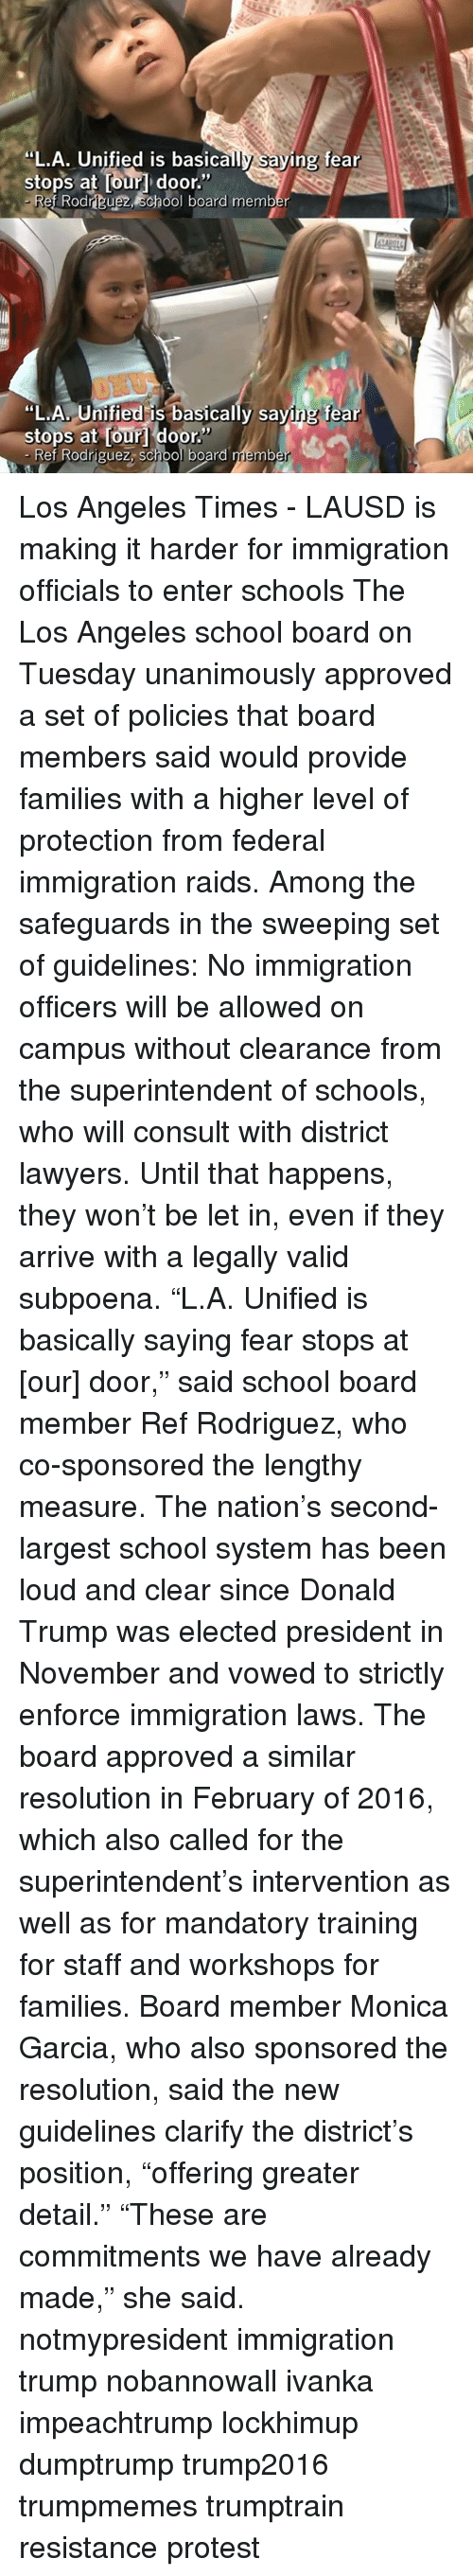 """Donald Trump, Memes, and Protest: """"L.A. Unified is basically saying fear  stops at our door.""""  Rei Rodriguez, School board member  """"L.A. Unified is basically sa  fear  stops at Dour door  Ref Rodriguez, school board memb Los Angeles Times - LAUSD is making it harder for immigration officials to enter schools The Los Angeles school board on Tuesday unanimously approved a set of policies that board members said would provide families with a higher level of protection from federal immigration raids. Among the safeguards in the sweeping set of guidelines: No immigration officers will be allowed on campus without clearance from the superintendent of schools, who will consult with district lawyers. Until that happens, they won't be let in, even if they arrive with a legally valid subpoena. """"L.A. Unified is basically saying fear stops at [our] door,"""" said school board member Ref Rodriguez, who co-sponsored the lengthy measure. The nation's second-largest school system has been loud and clear since Donald Trump was elected president in November and vowed to strictly enforce immigration laws. The board approved a similar resolution in February of 2016, which also called for the superintendent's intervention as well as for mandatory training for staff and workshops for families. Board member Monica Garcia, who also sponsored the resolution, said the new guidelines clarify the district's position, """"offering greater detail."""" """"These are commitments we have already made,"""" she said. notmypresident immigration trump nobannowall ivanka impeachtrump lockhimup dumptrump trump2016 trumpmemes trumptrain resistance protest"""